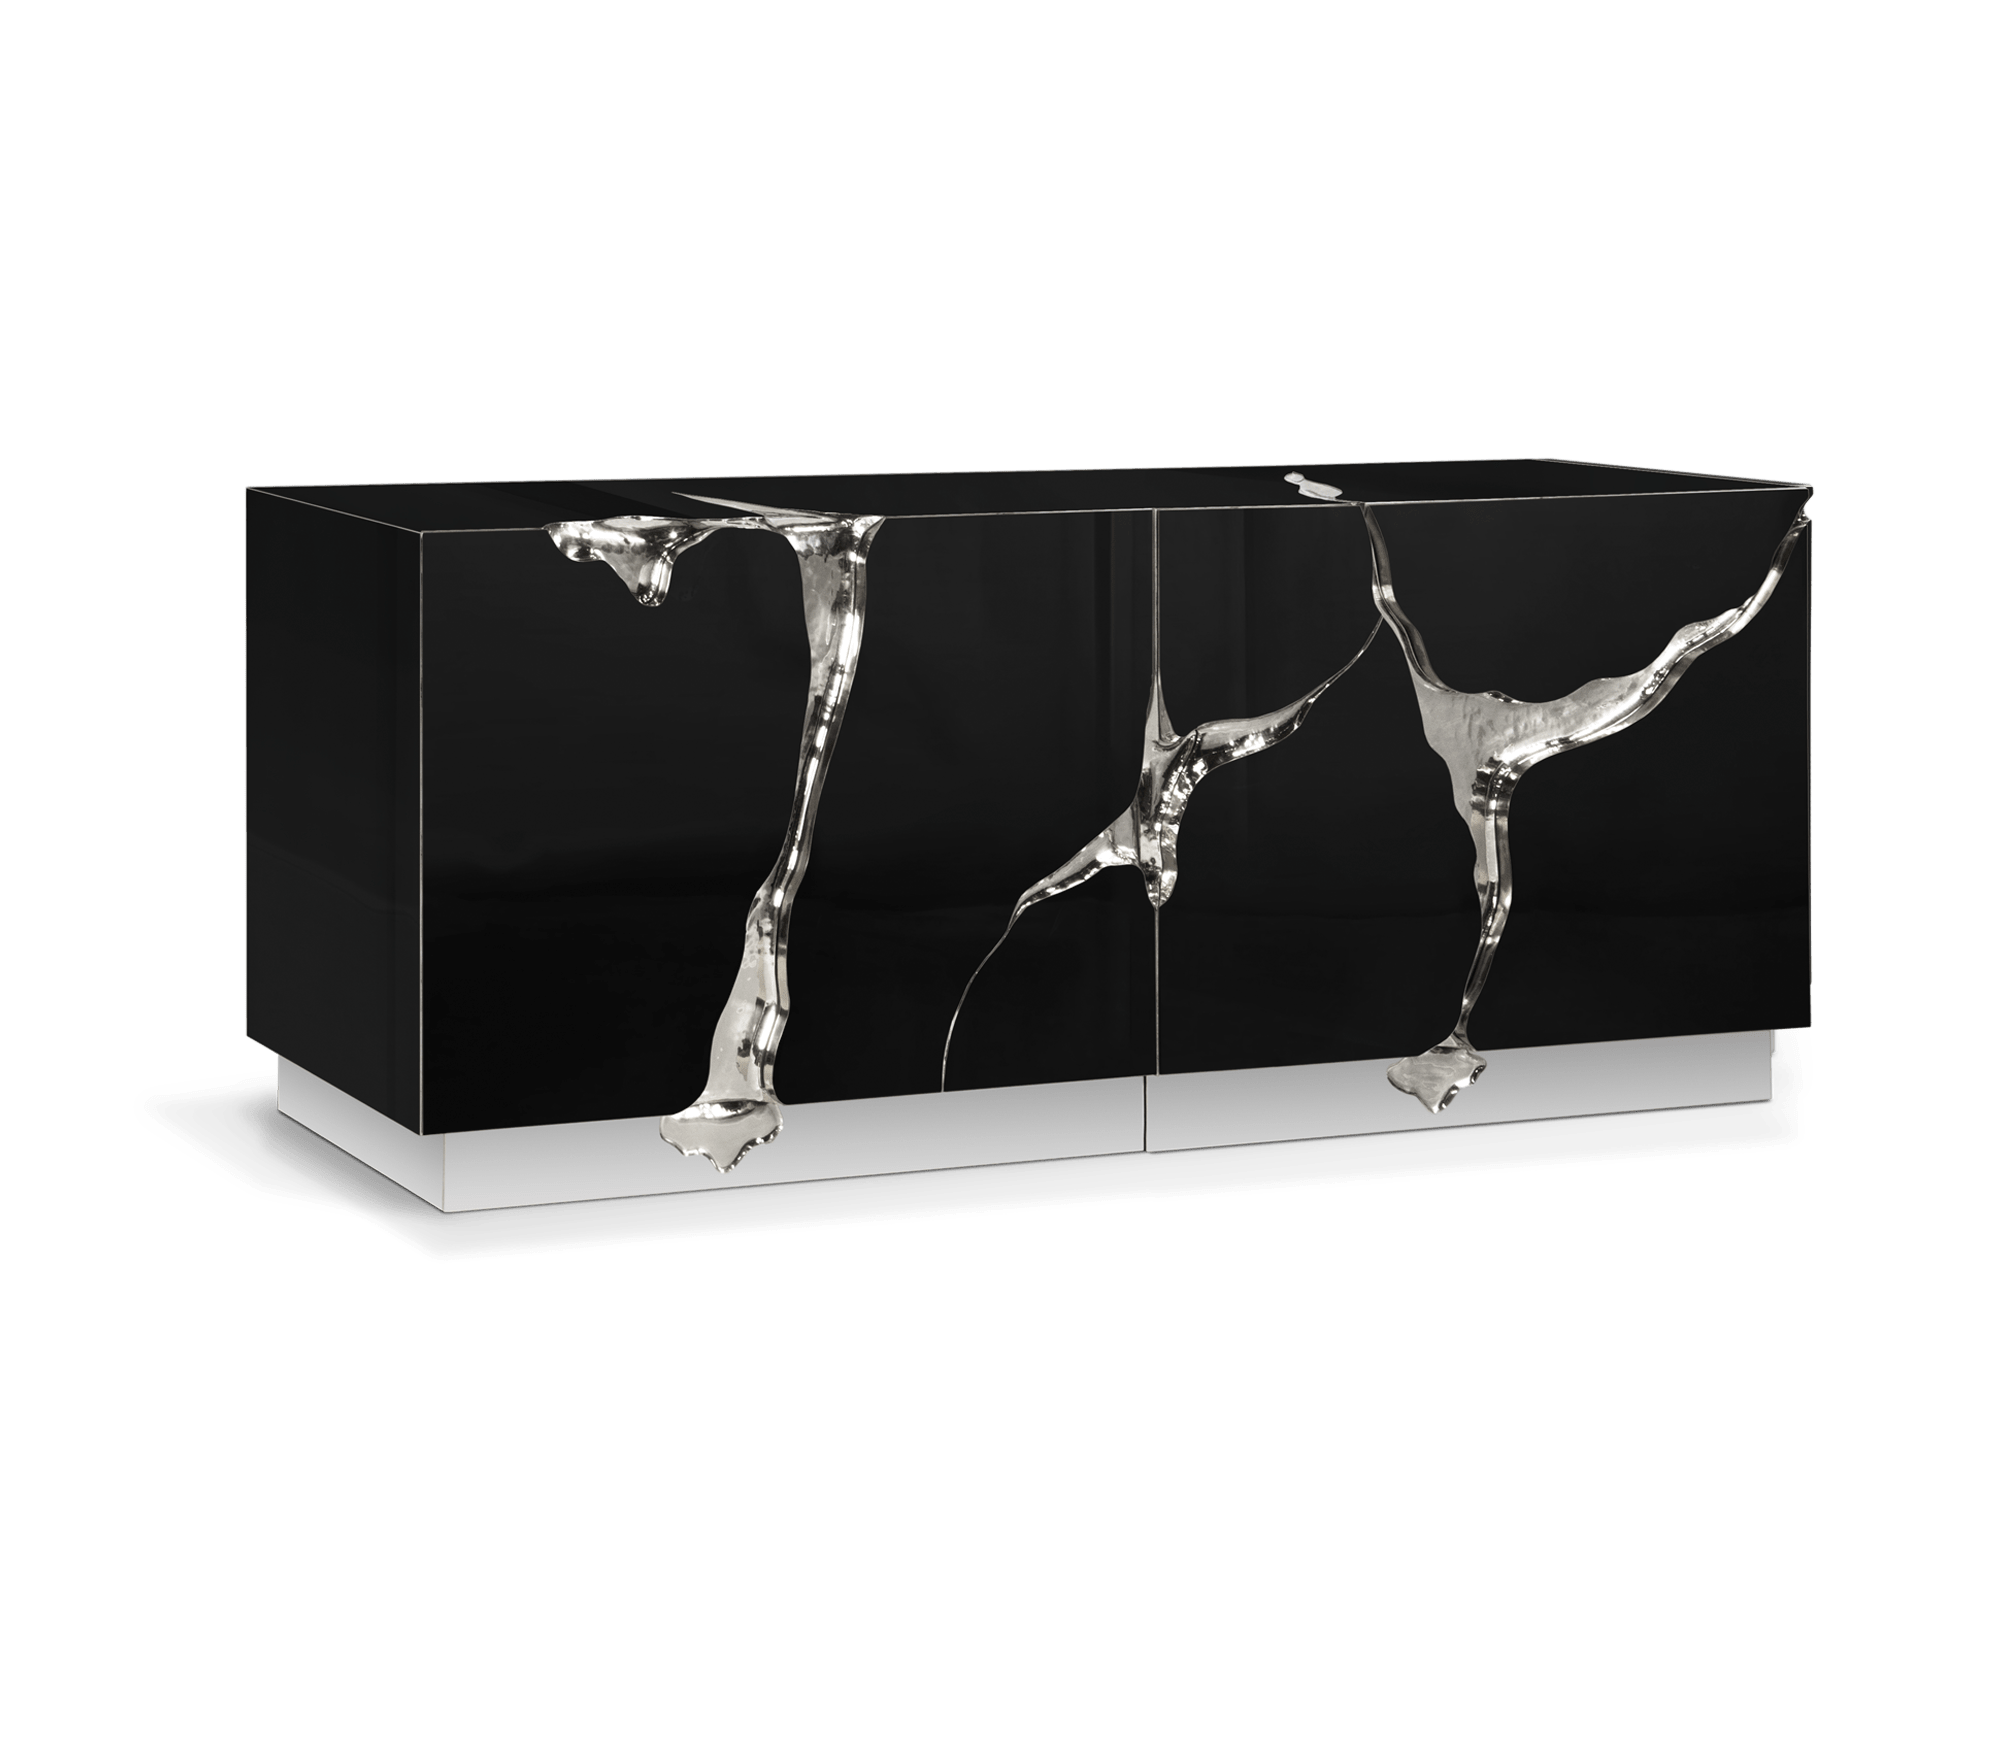 Lapiaz Black Silver Sideboard by Boca do Lobo